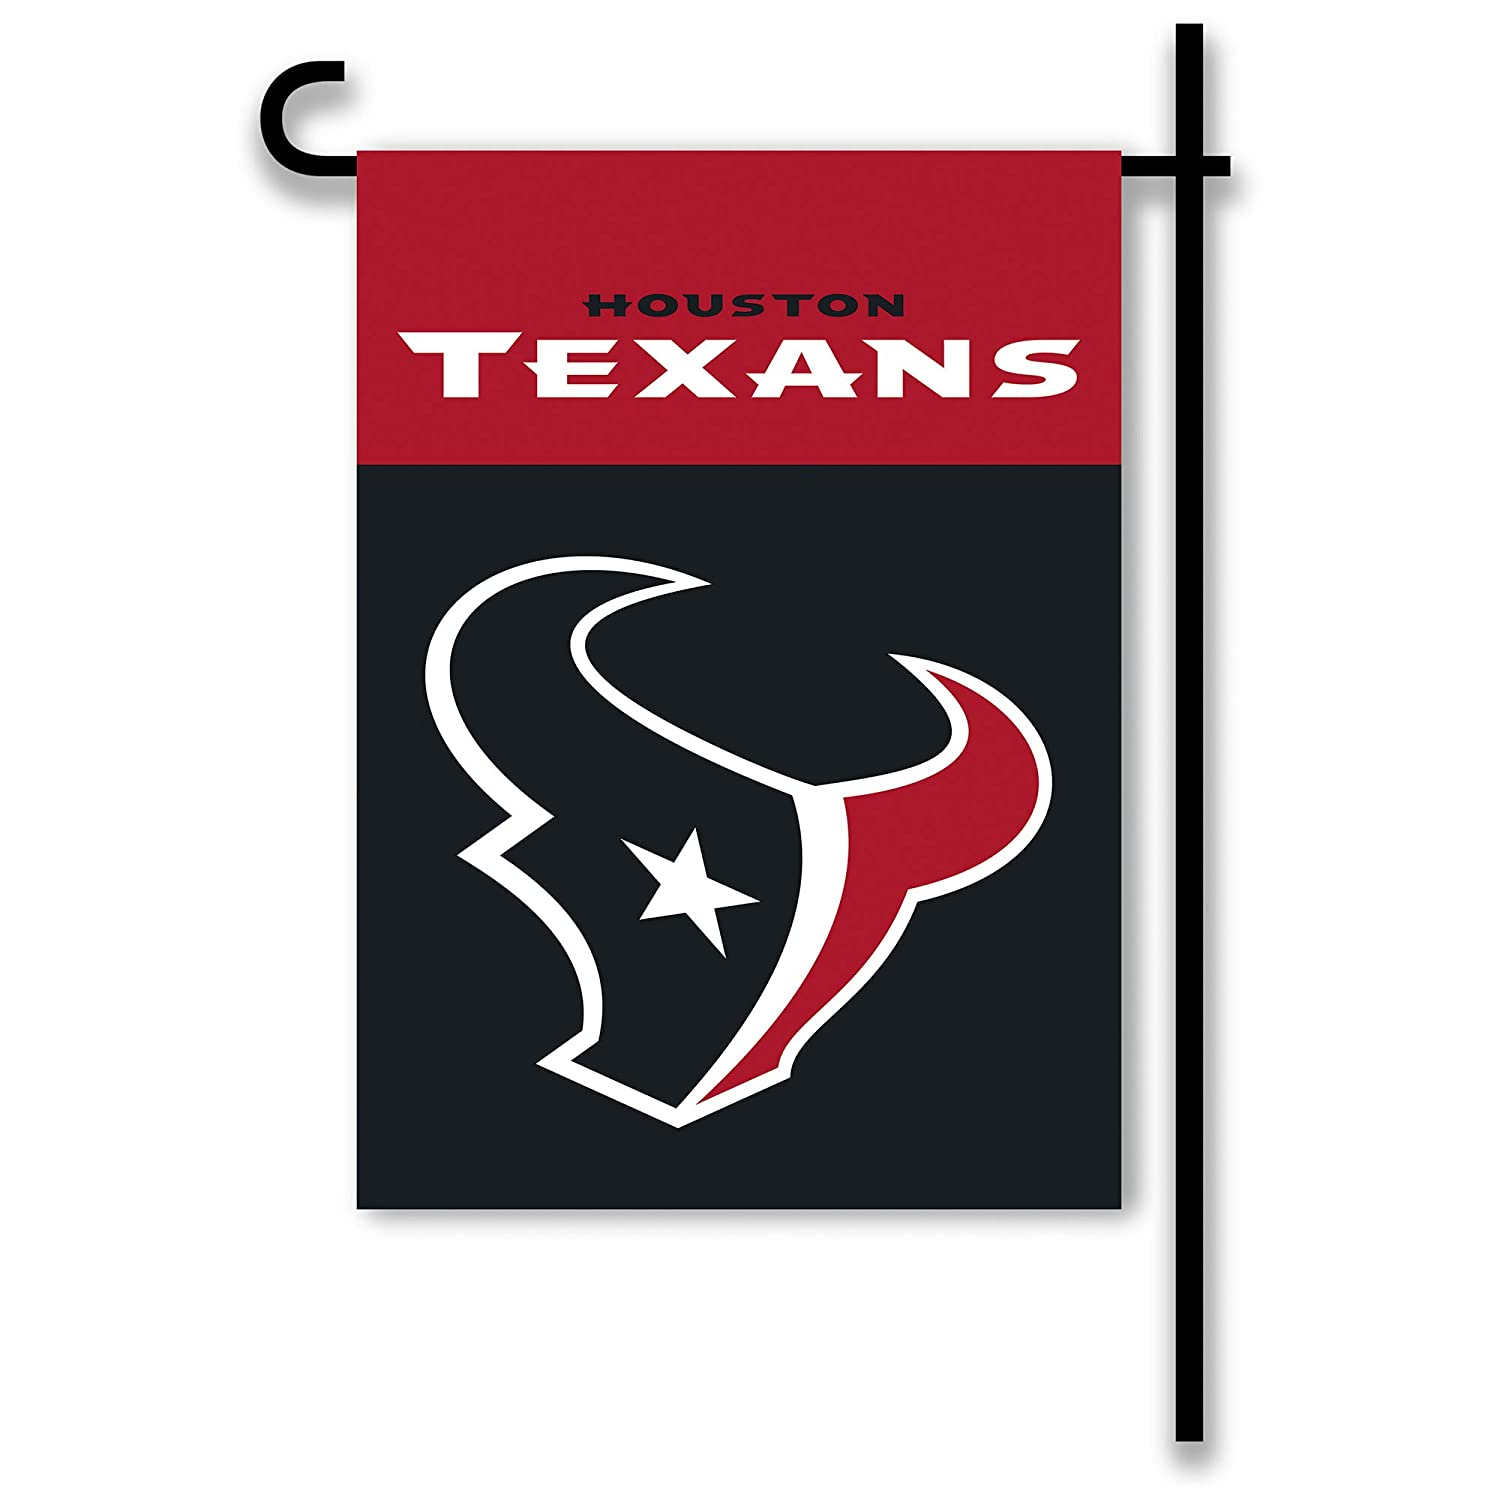 NFL Houston Texans 2-Sided Home/Yard Flag (13' x 18'), Navy, BSI Products Inc. 70863B